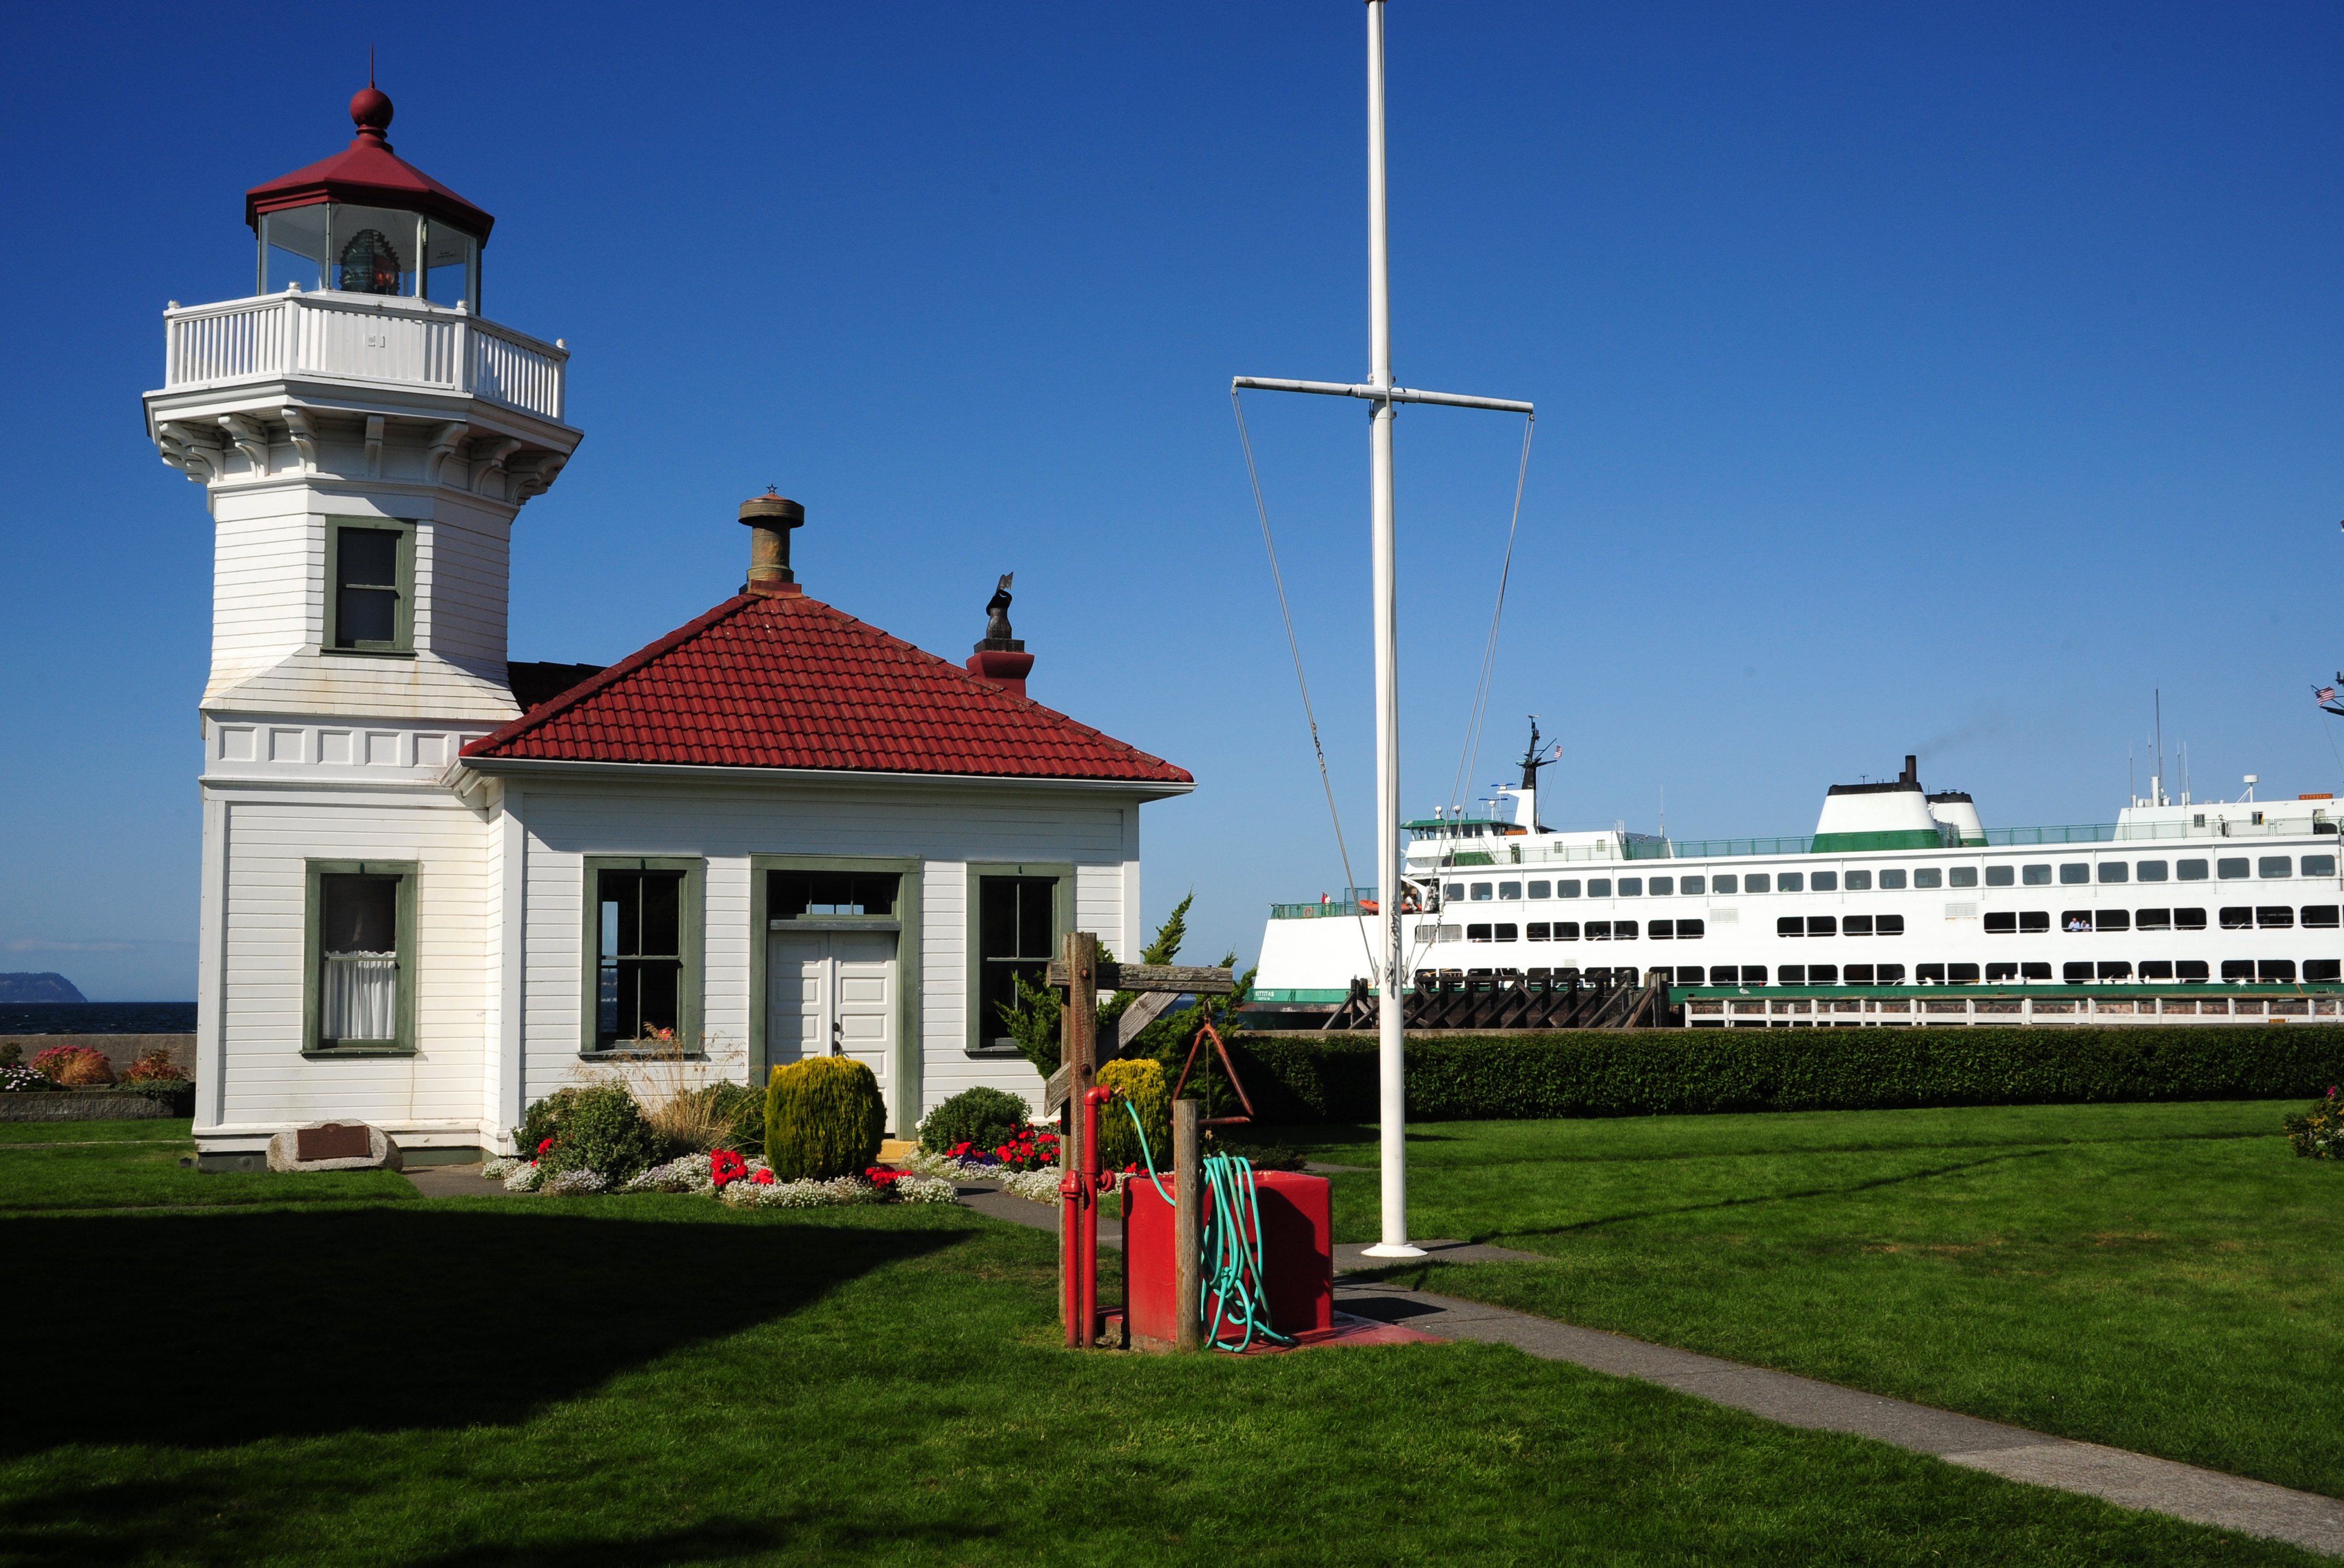 Daytrip Tours To Victoria From Seattle